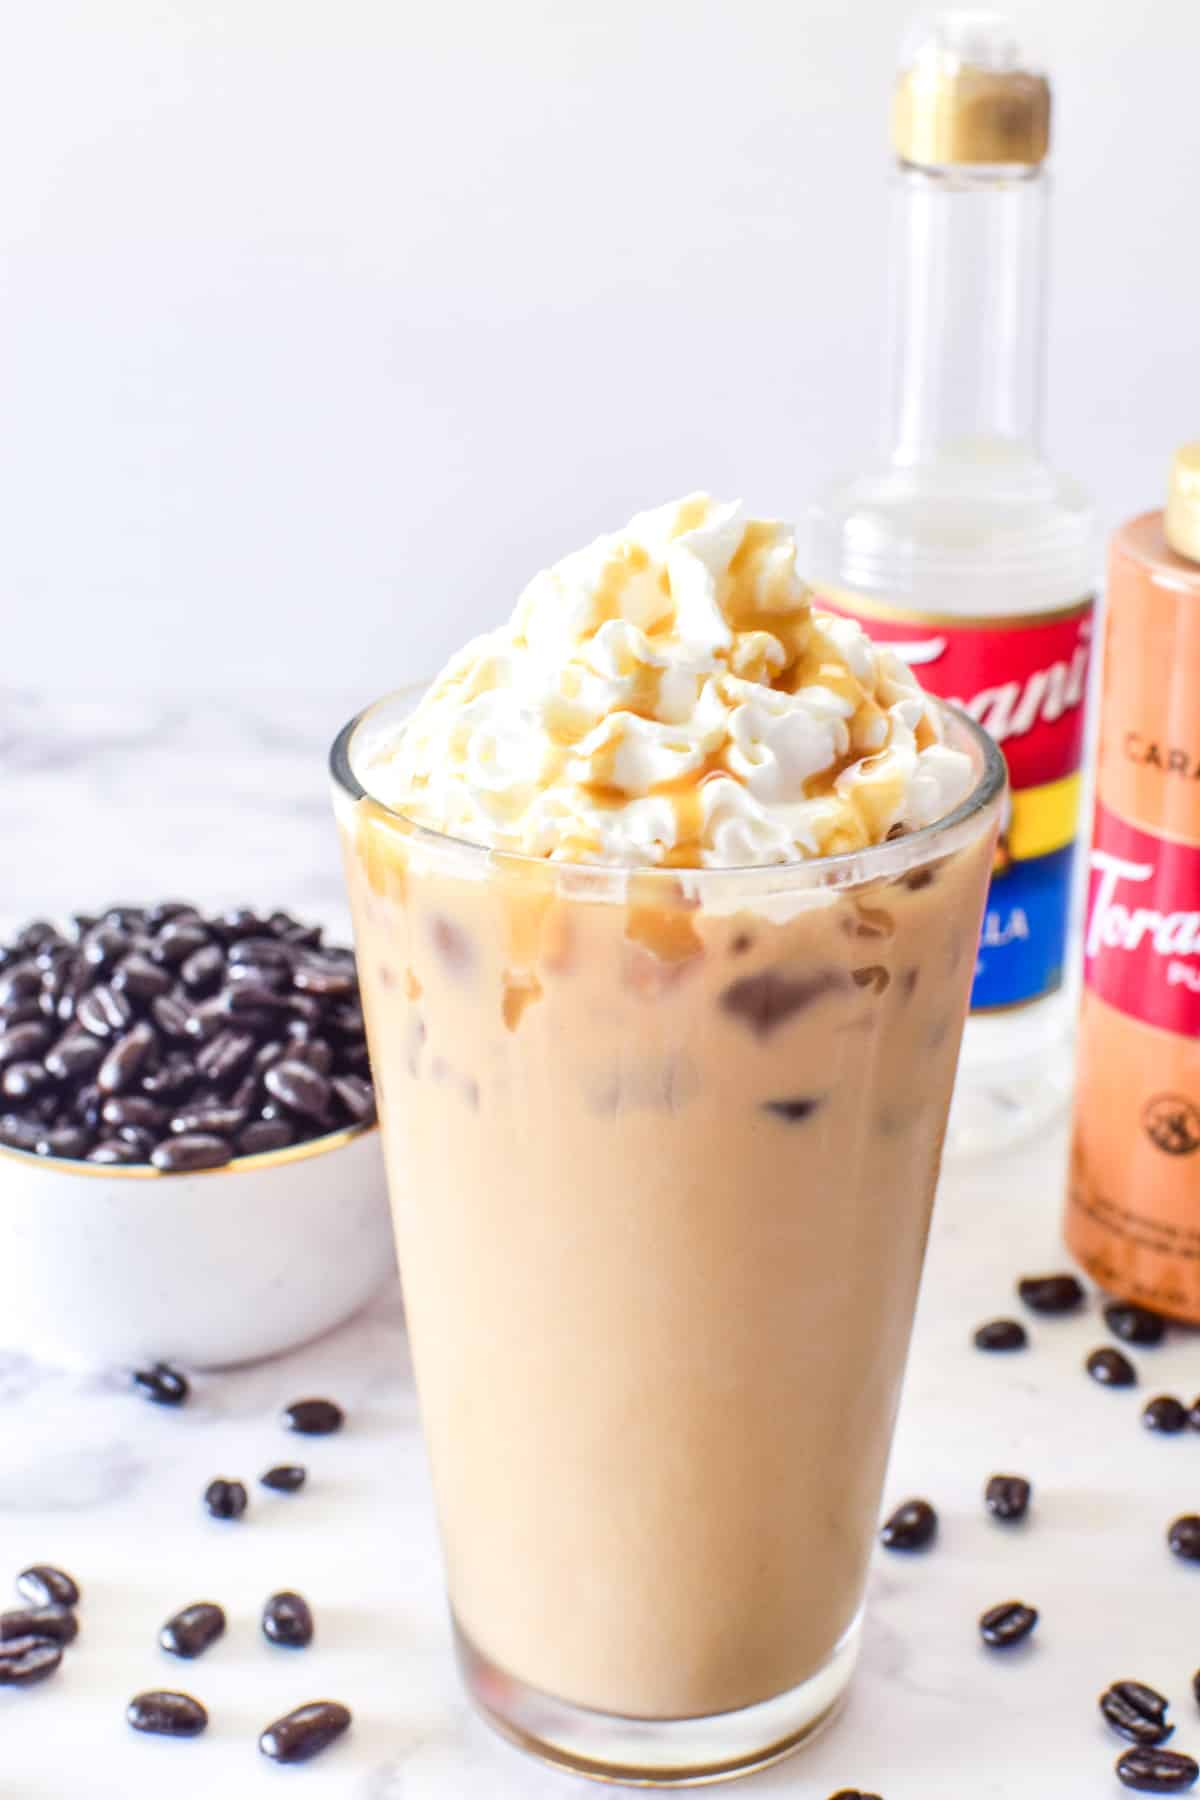 Iced Vanilla Latte with whipped cream and caramel syrup